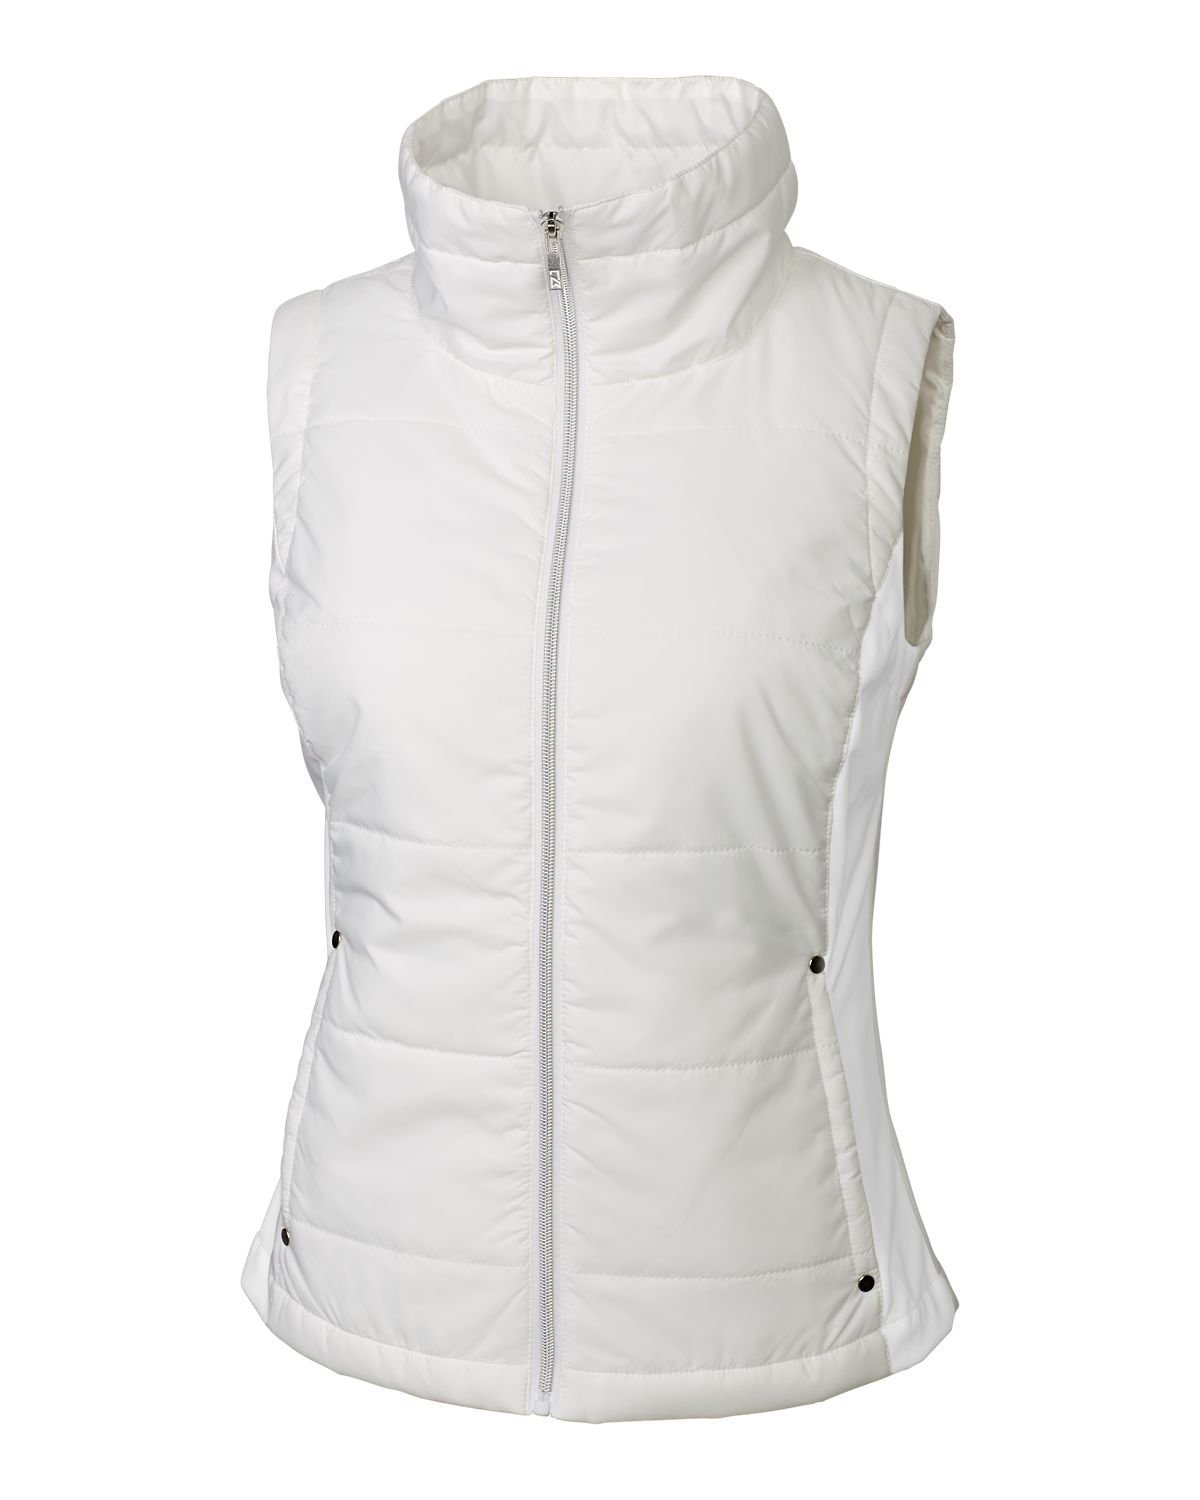 Cutter & Buck Women's CB Weathertec Claudia Quilted Vest, White, X-Small by Cutter